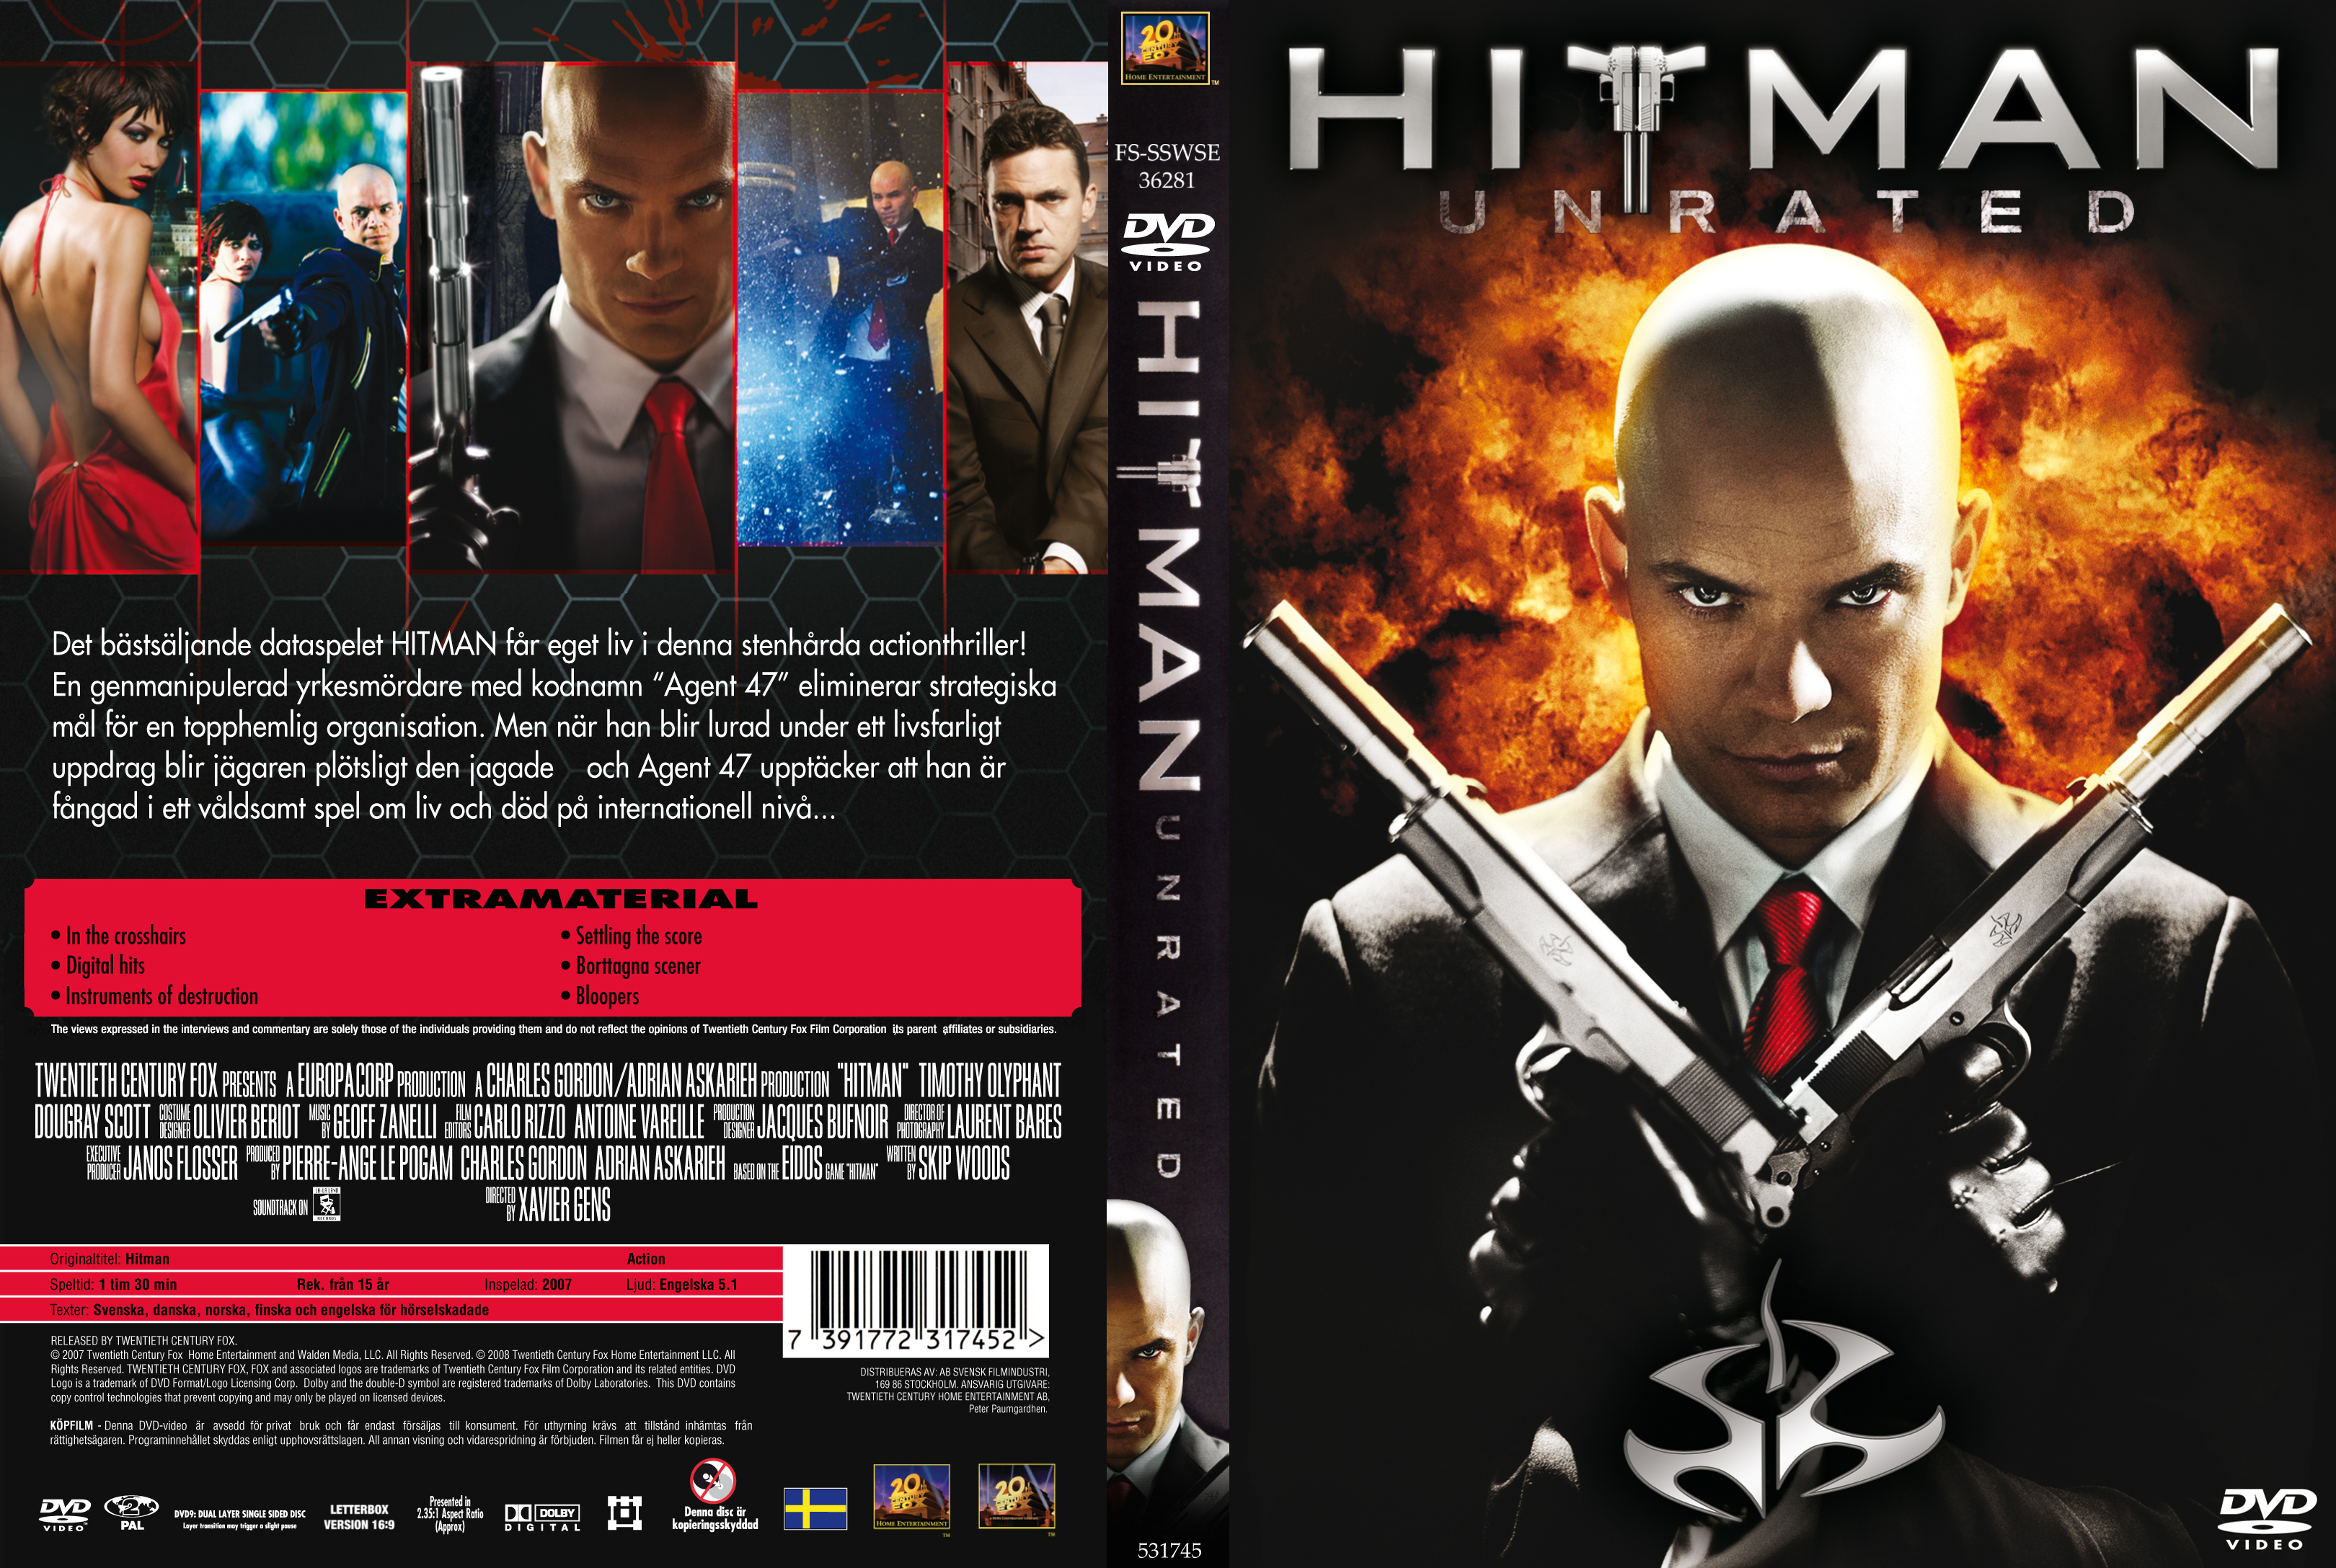 Covers Box Sk Hitman 2007 High Quality Dvd Blueray Movie